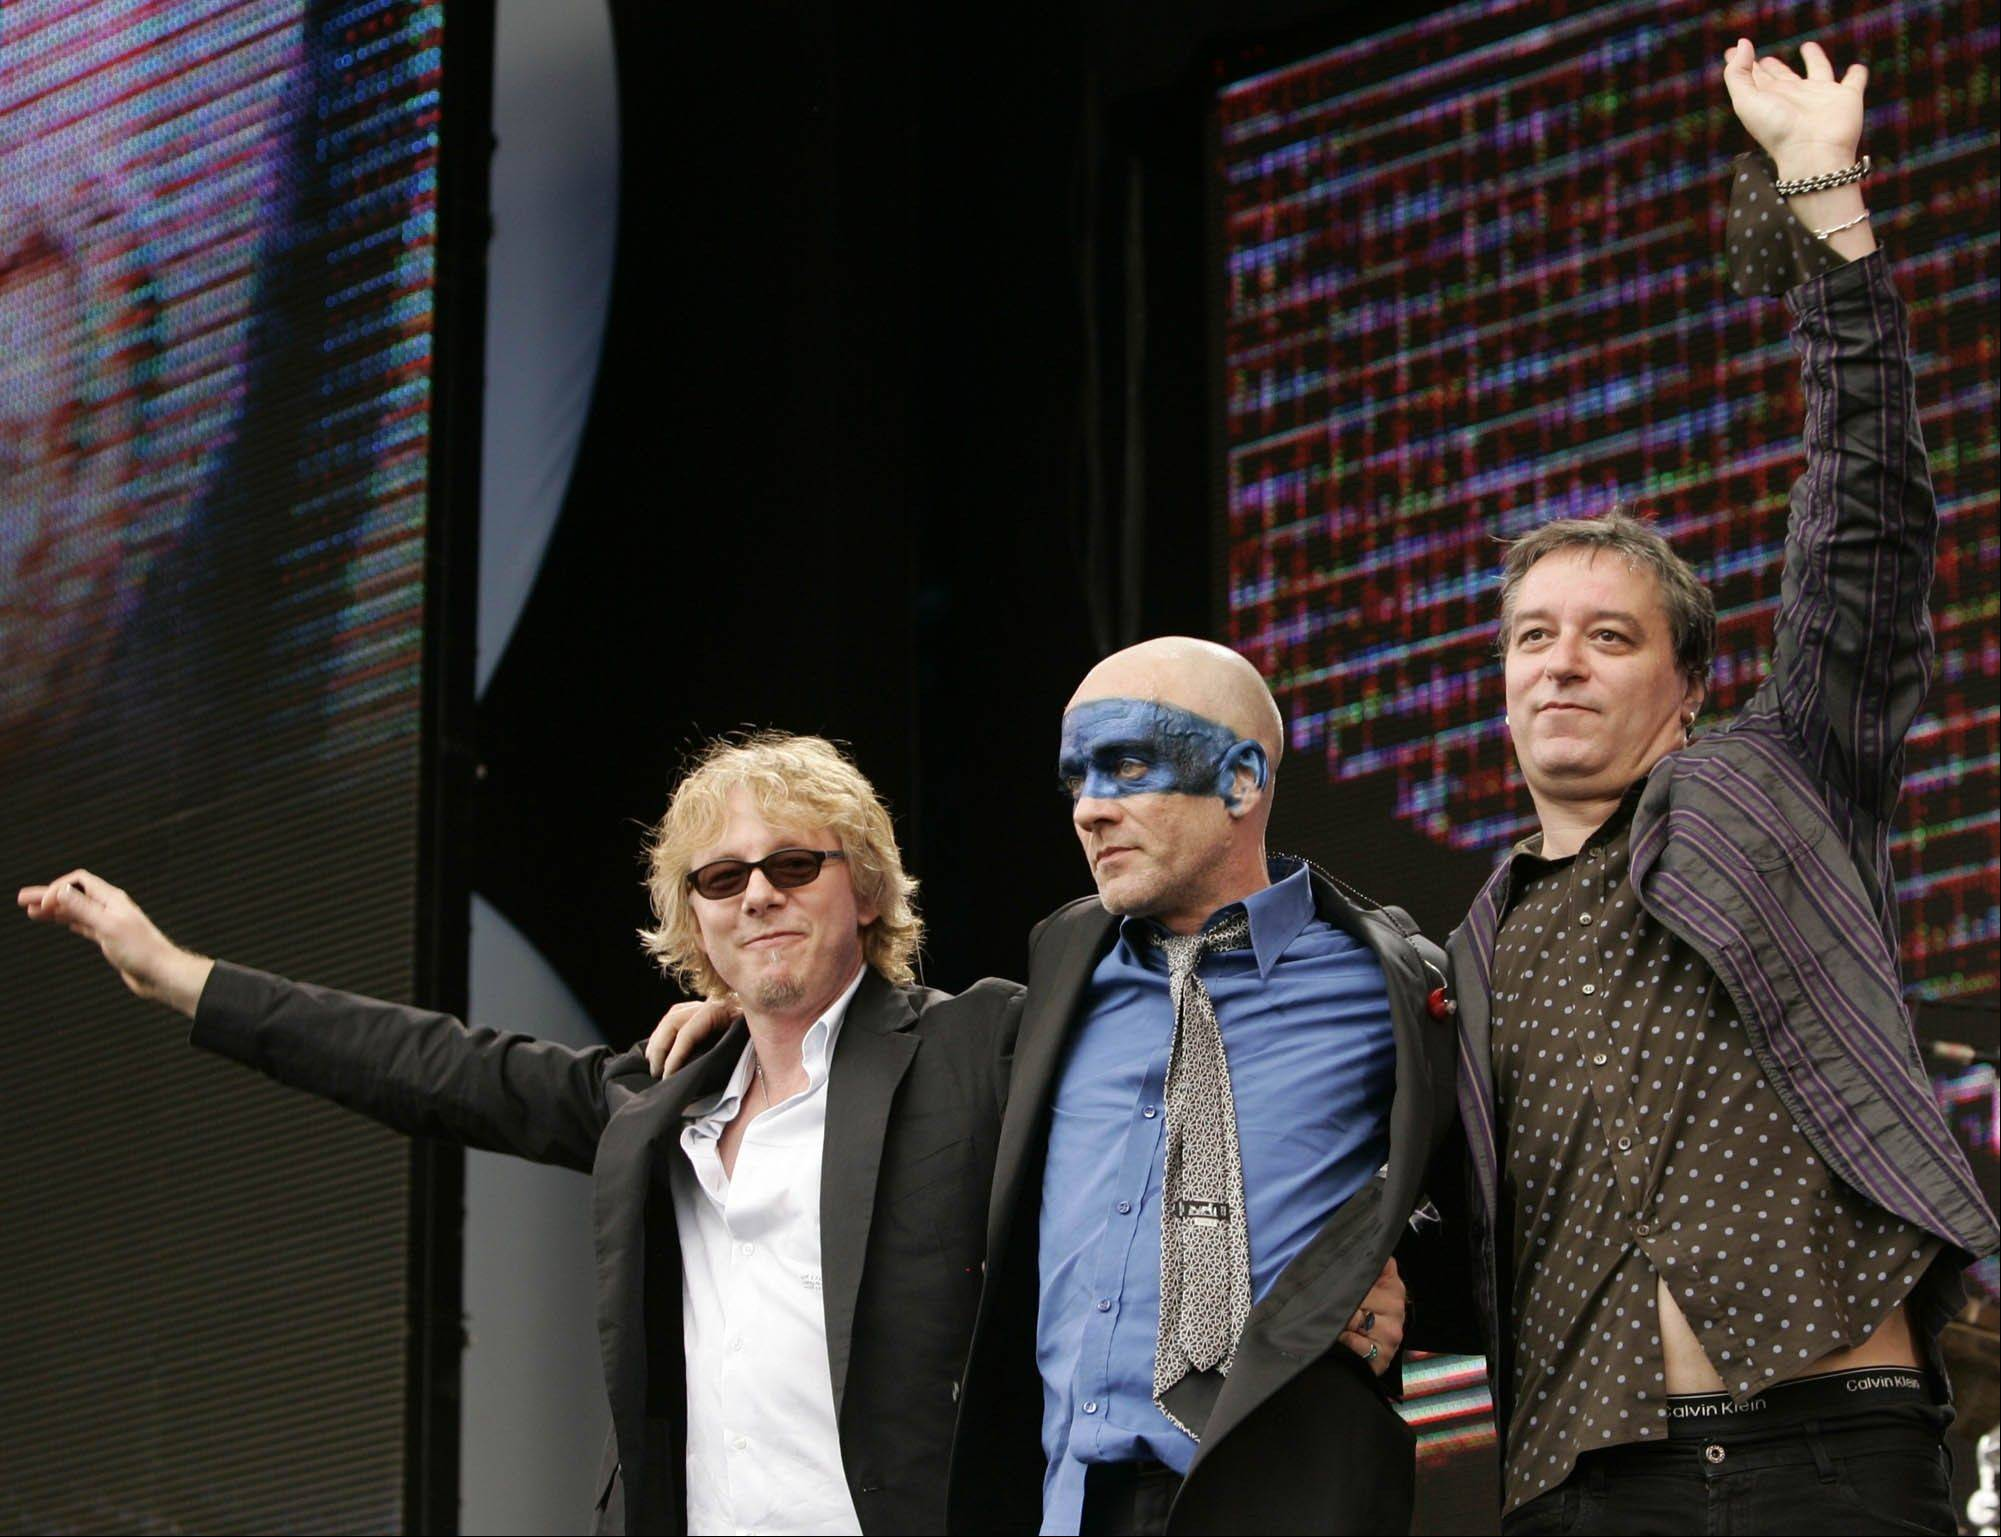 Mike Mills, left, Michael Stipe and Peter Buck of the rock band R.E.M have announced on their website that they are breaking up.